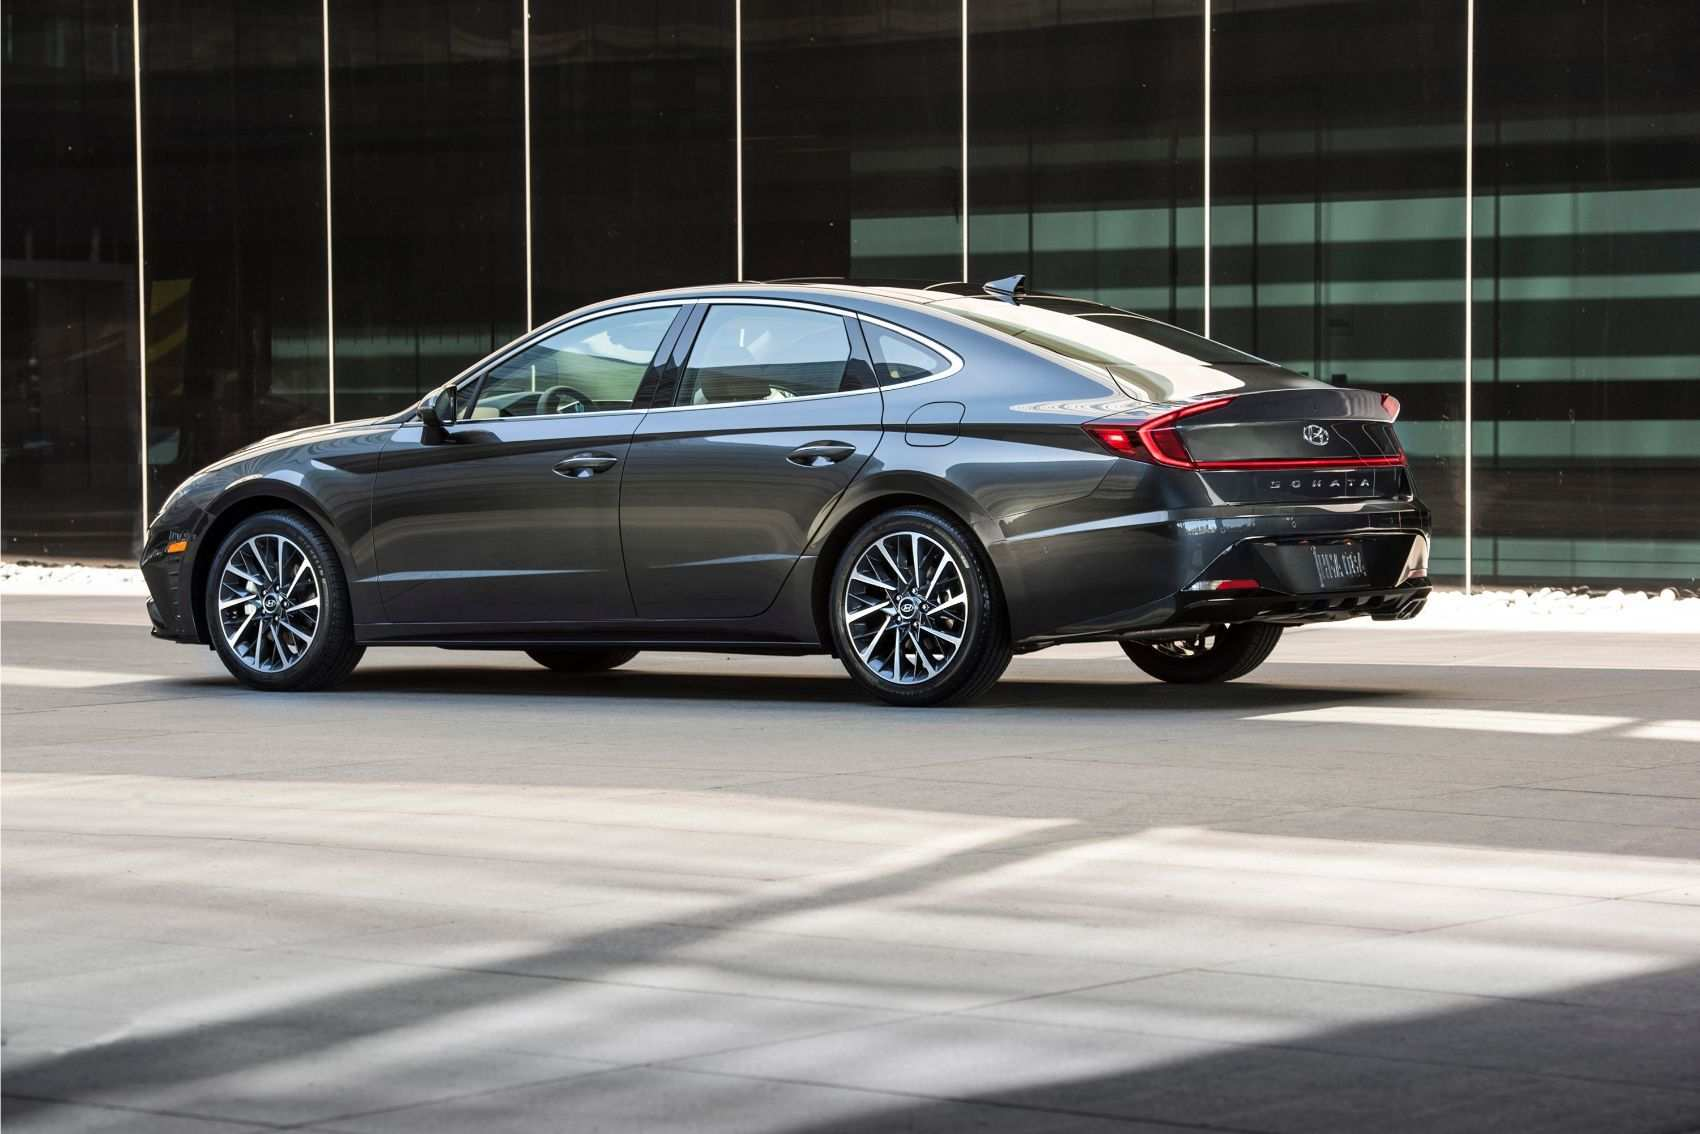 84 The Best When Is The 2020 Hyundai Sonata Coming Out Specs